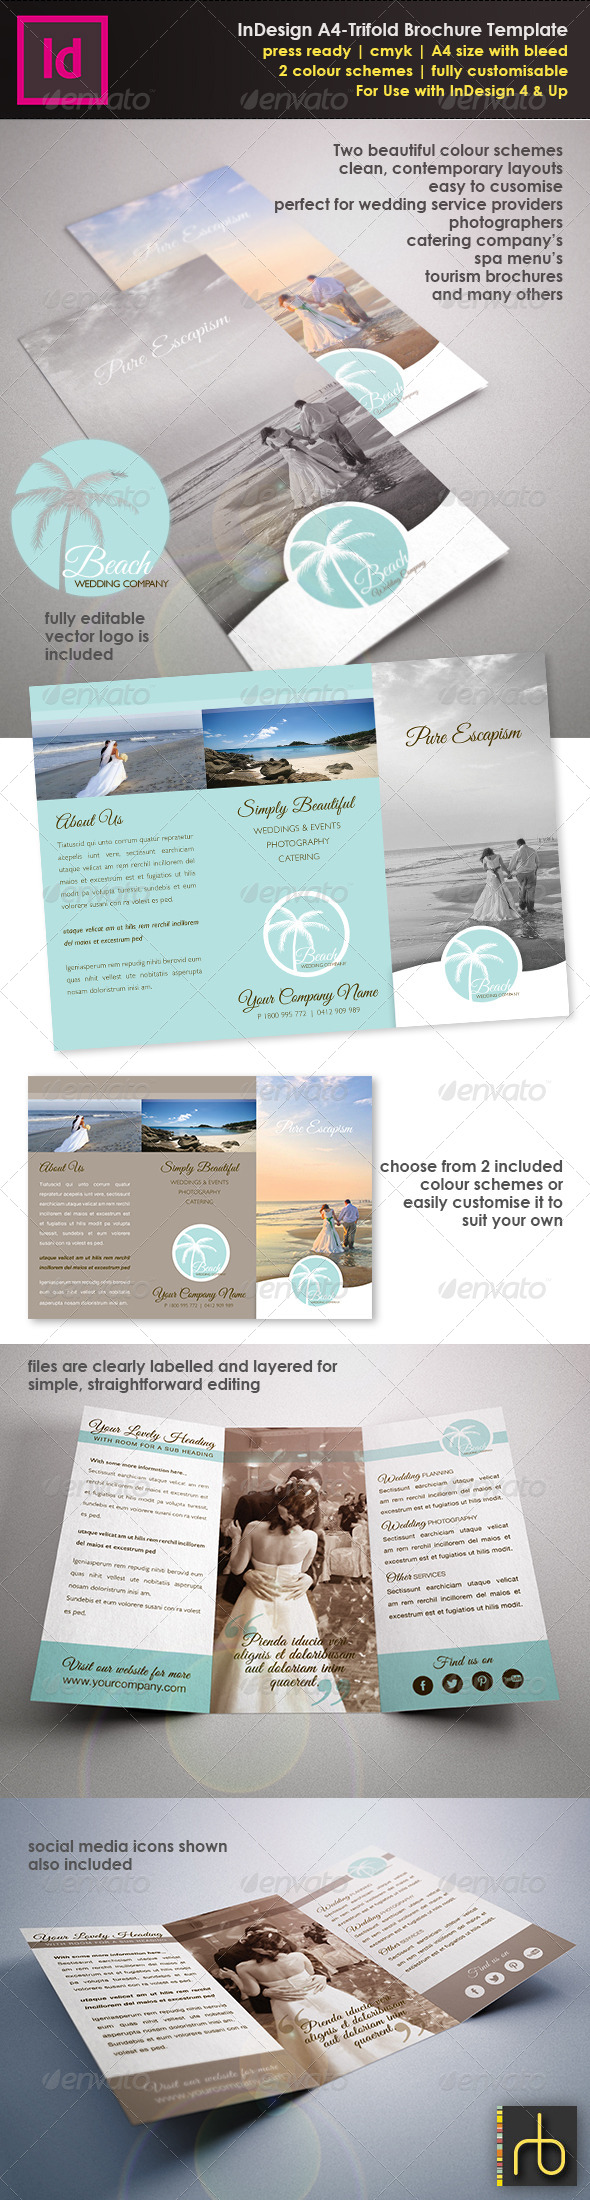 InDesign A4 Trifold Brochure Template - Brochures Print Templates